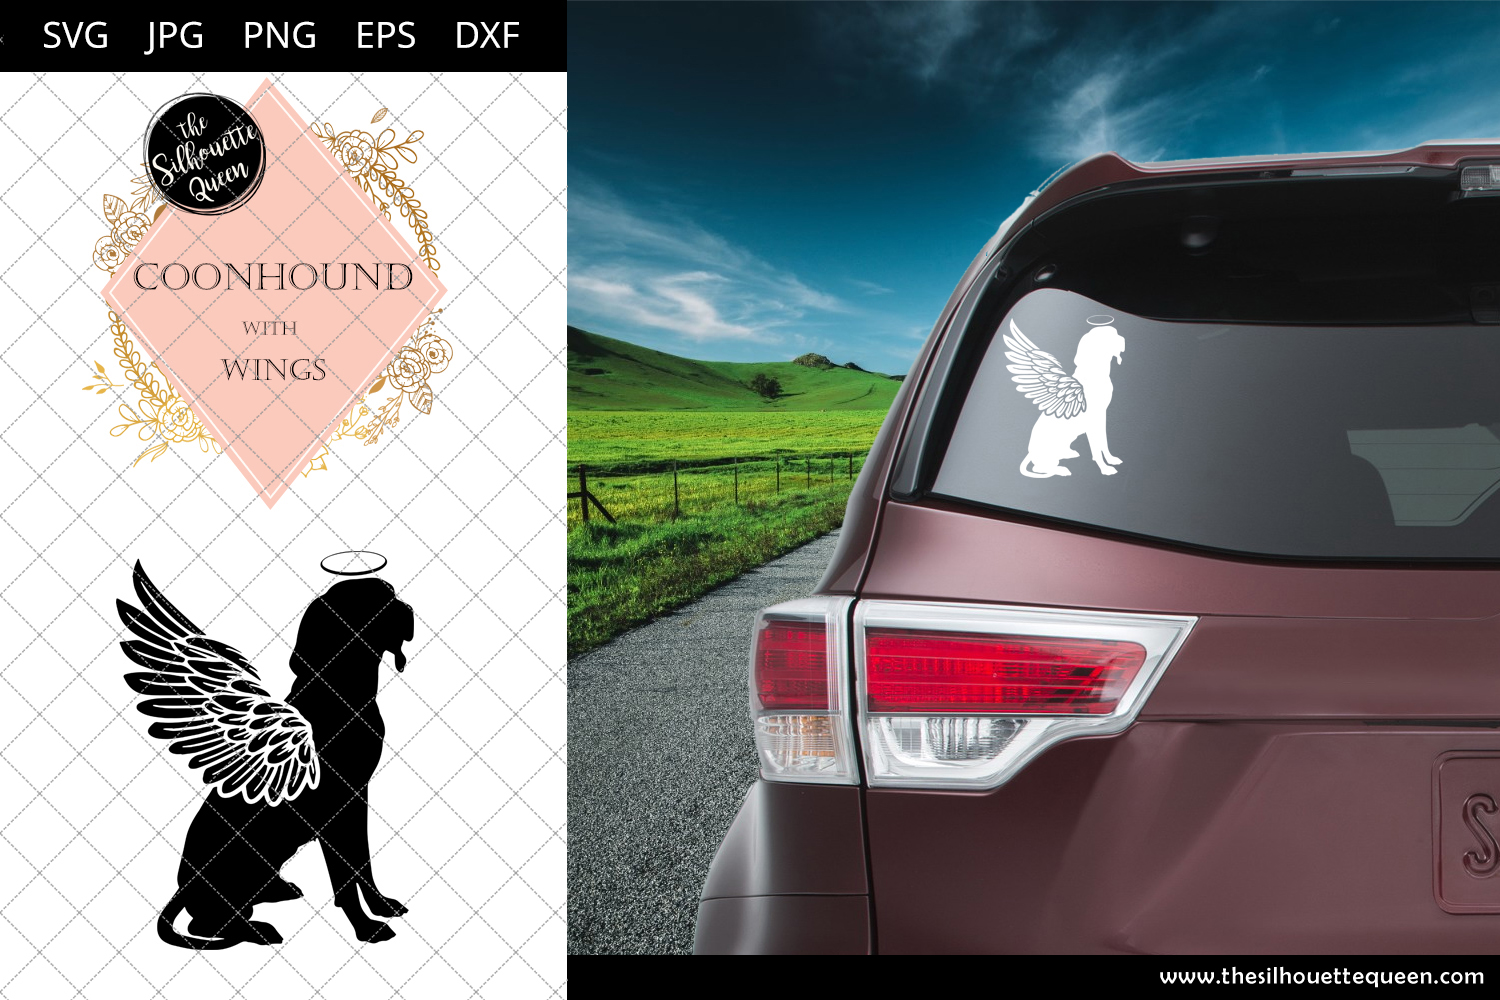 Download Free Coonhound 4 With Wings Graphic By Thesilhouettequeenshop for Cricut Explore, Silhouette and other cutting machines.